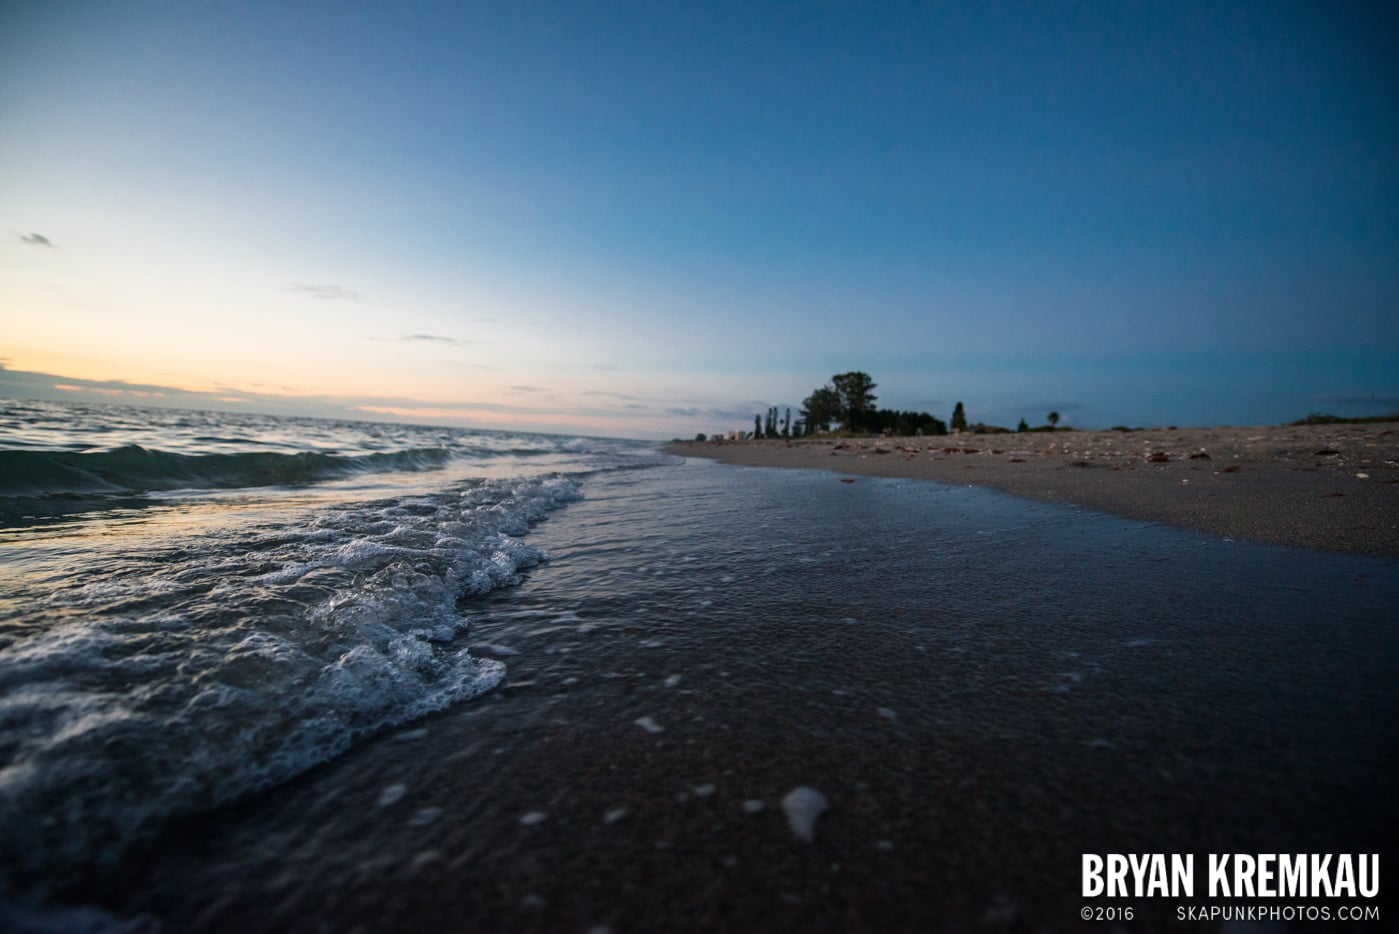 Sunsets, Astrophotography & Birds @ Venice, Florida - 10.25.14 - 11.5.14 (108)